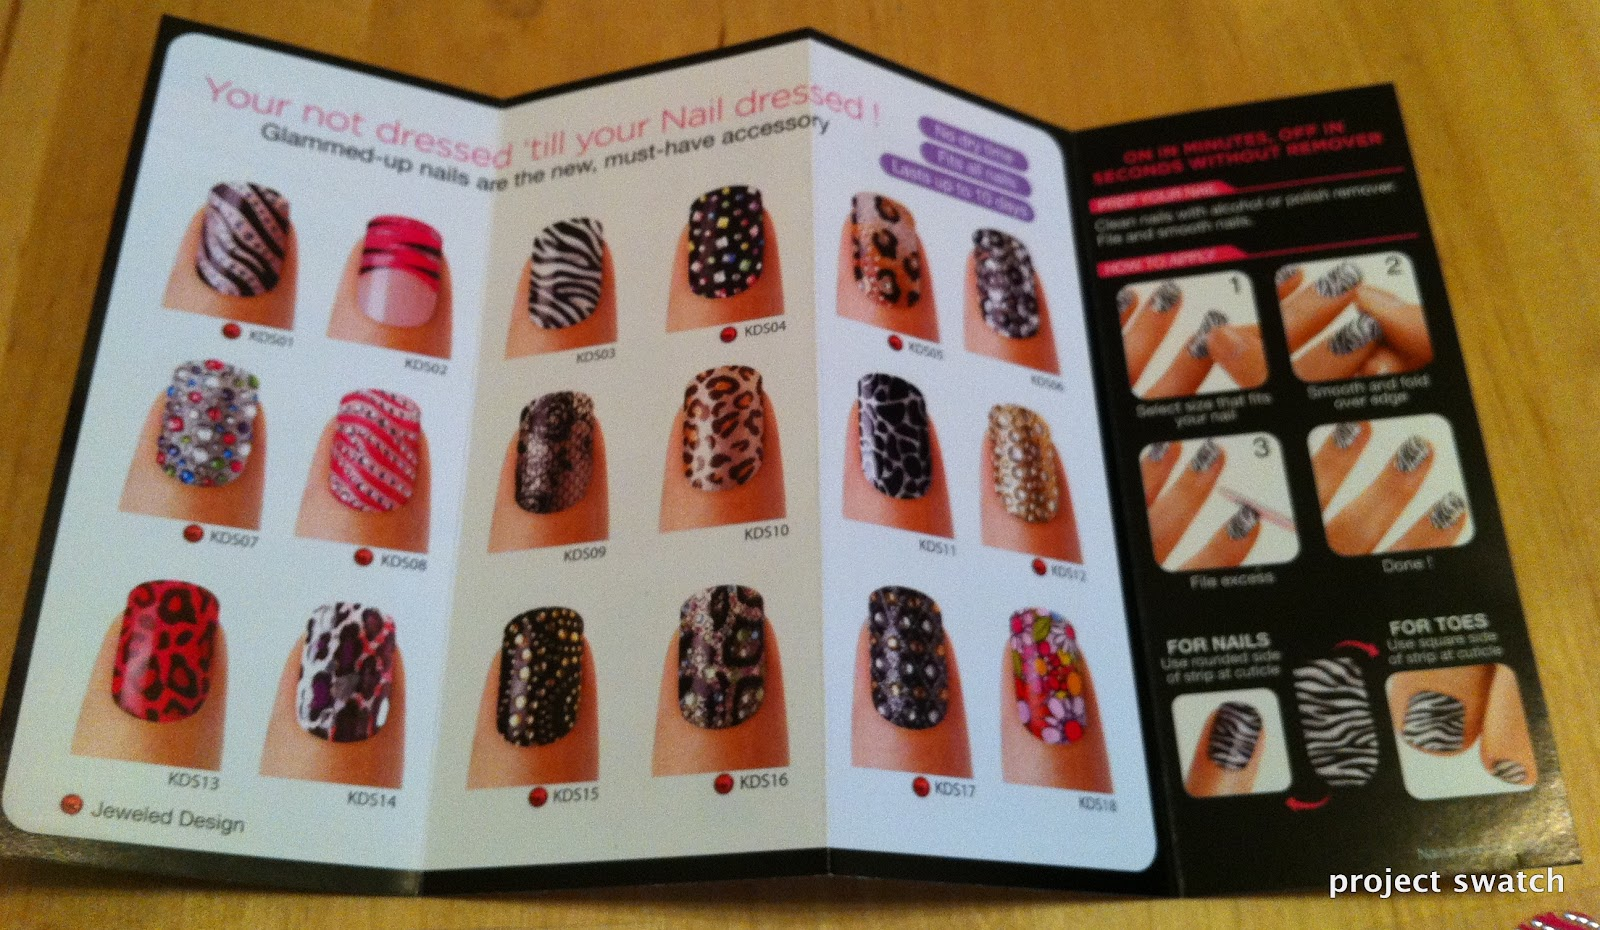 Kiss Nail Dress Stickers Review and Photos - Project Swatch